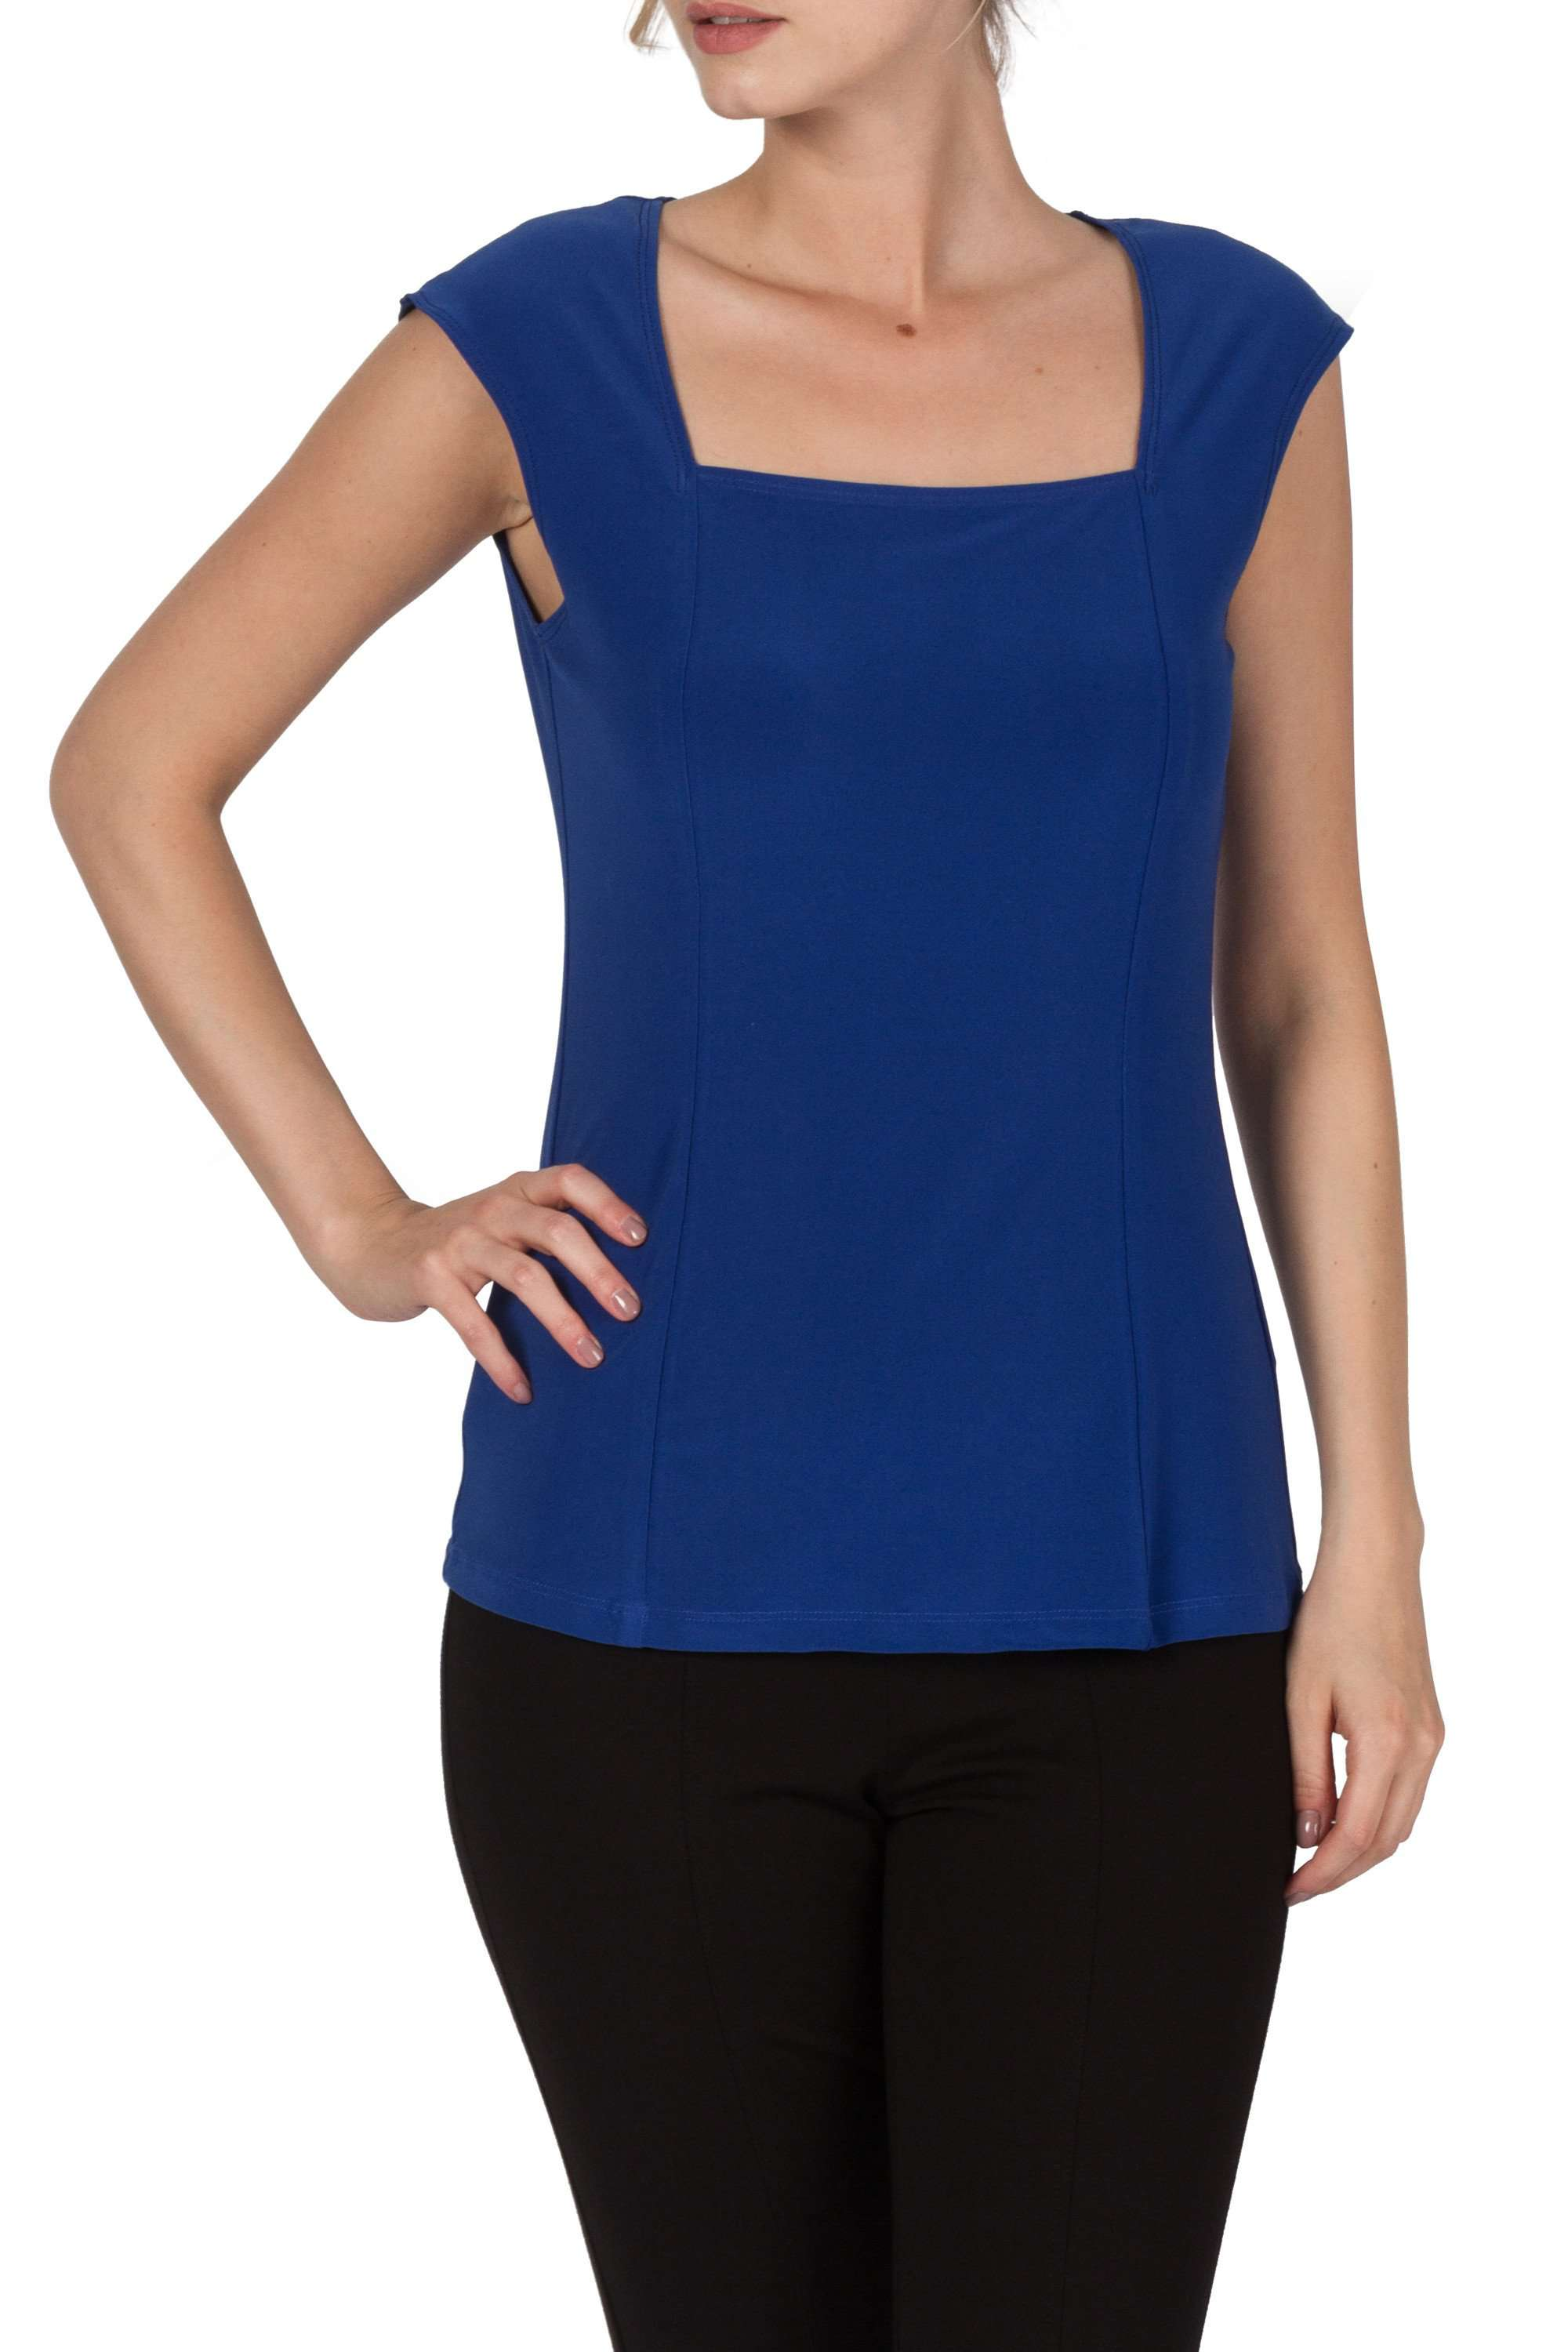 Camisole Royal Blue-Square Neckline-Great Fit - Yvonne Marie